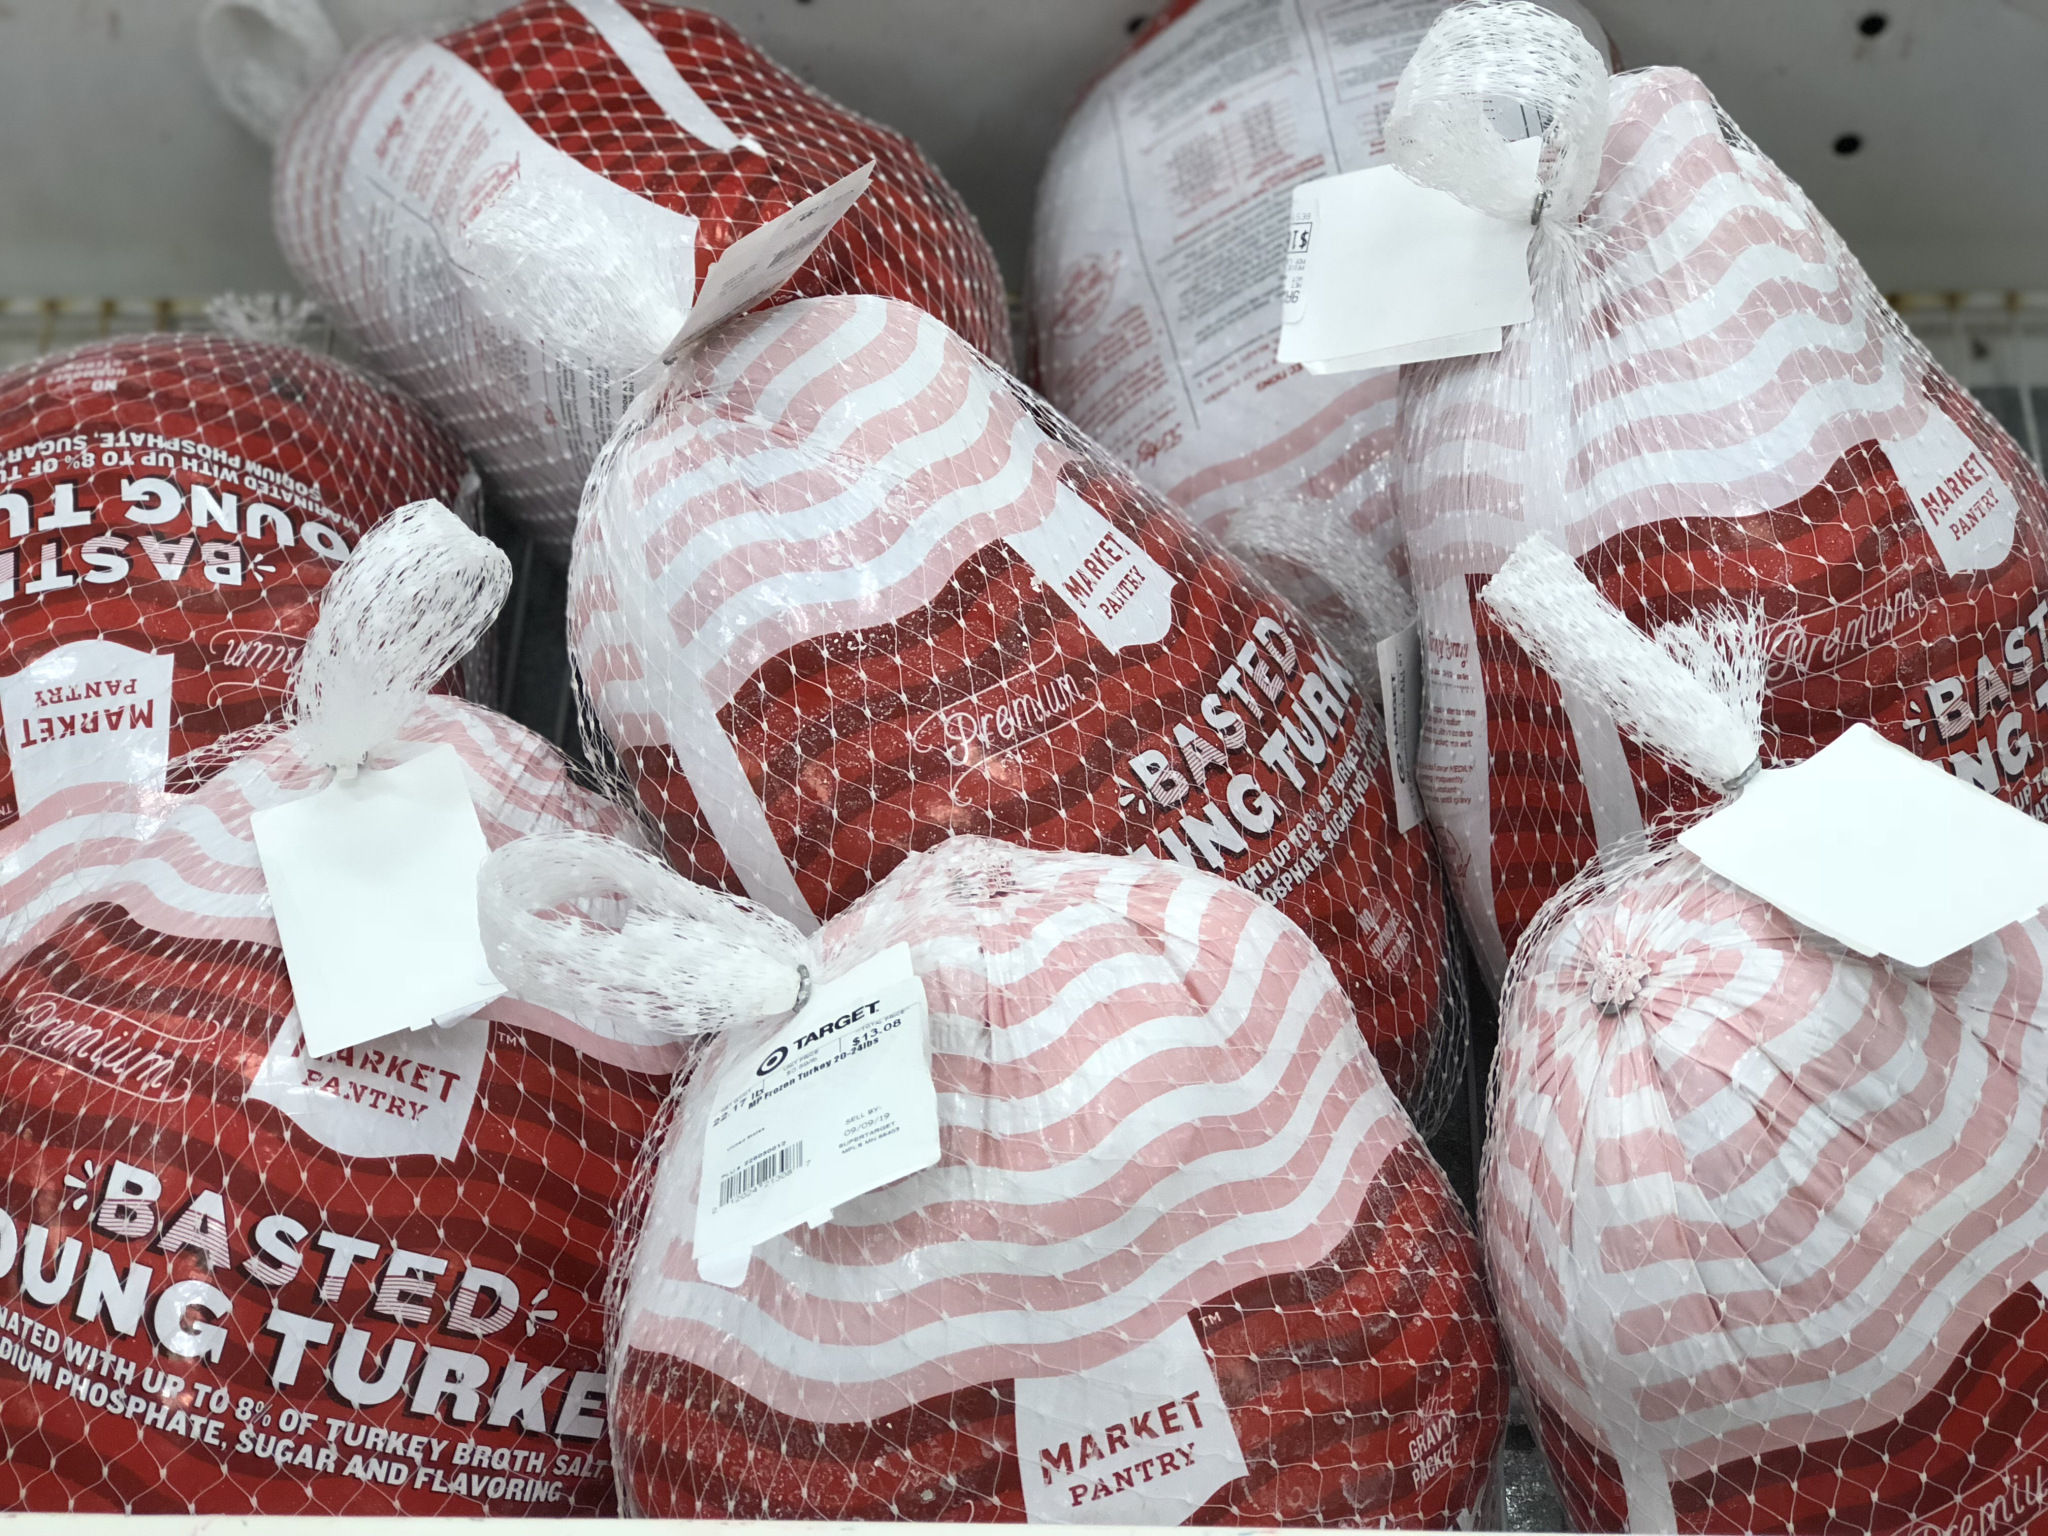 market pantry turkeys